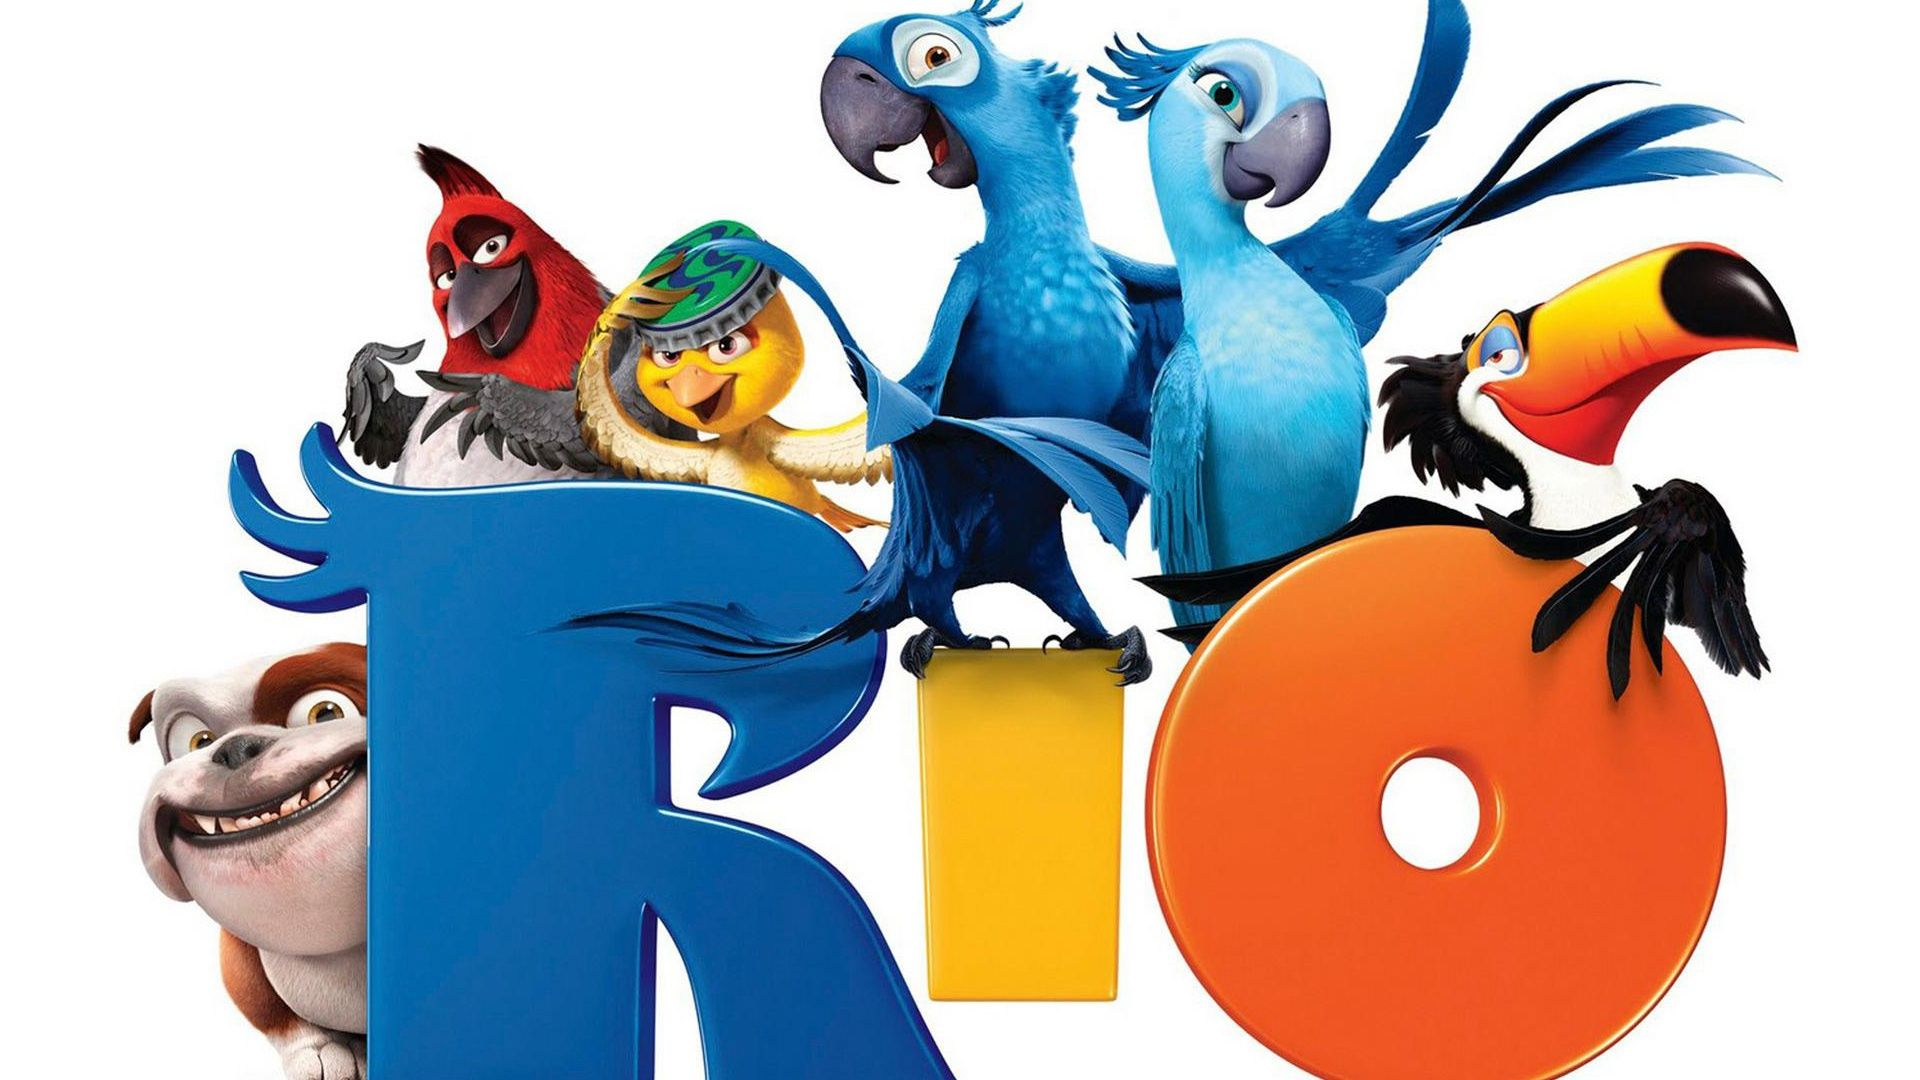 cartoon movie | Rio cartoon movie Wallpaper | 1920x1080 ...